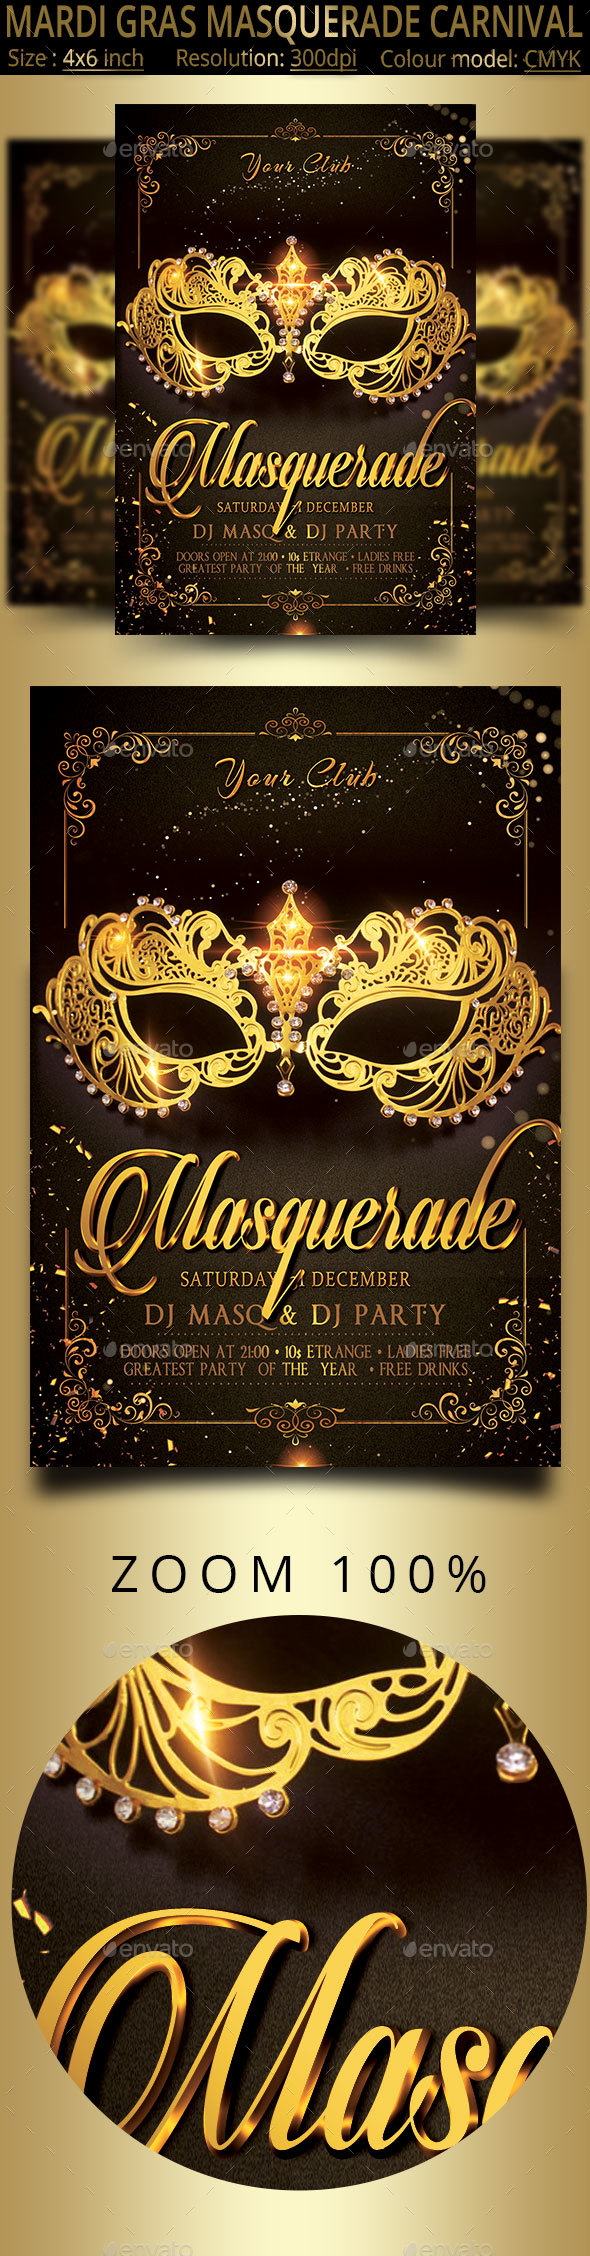 Masquerade Mardi Gras Carnival Party Flyer - Events Flyers